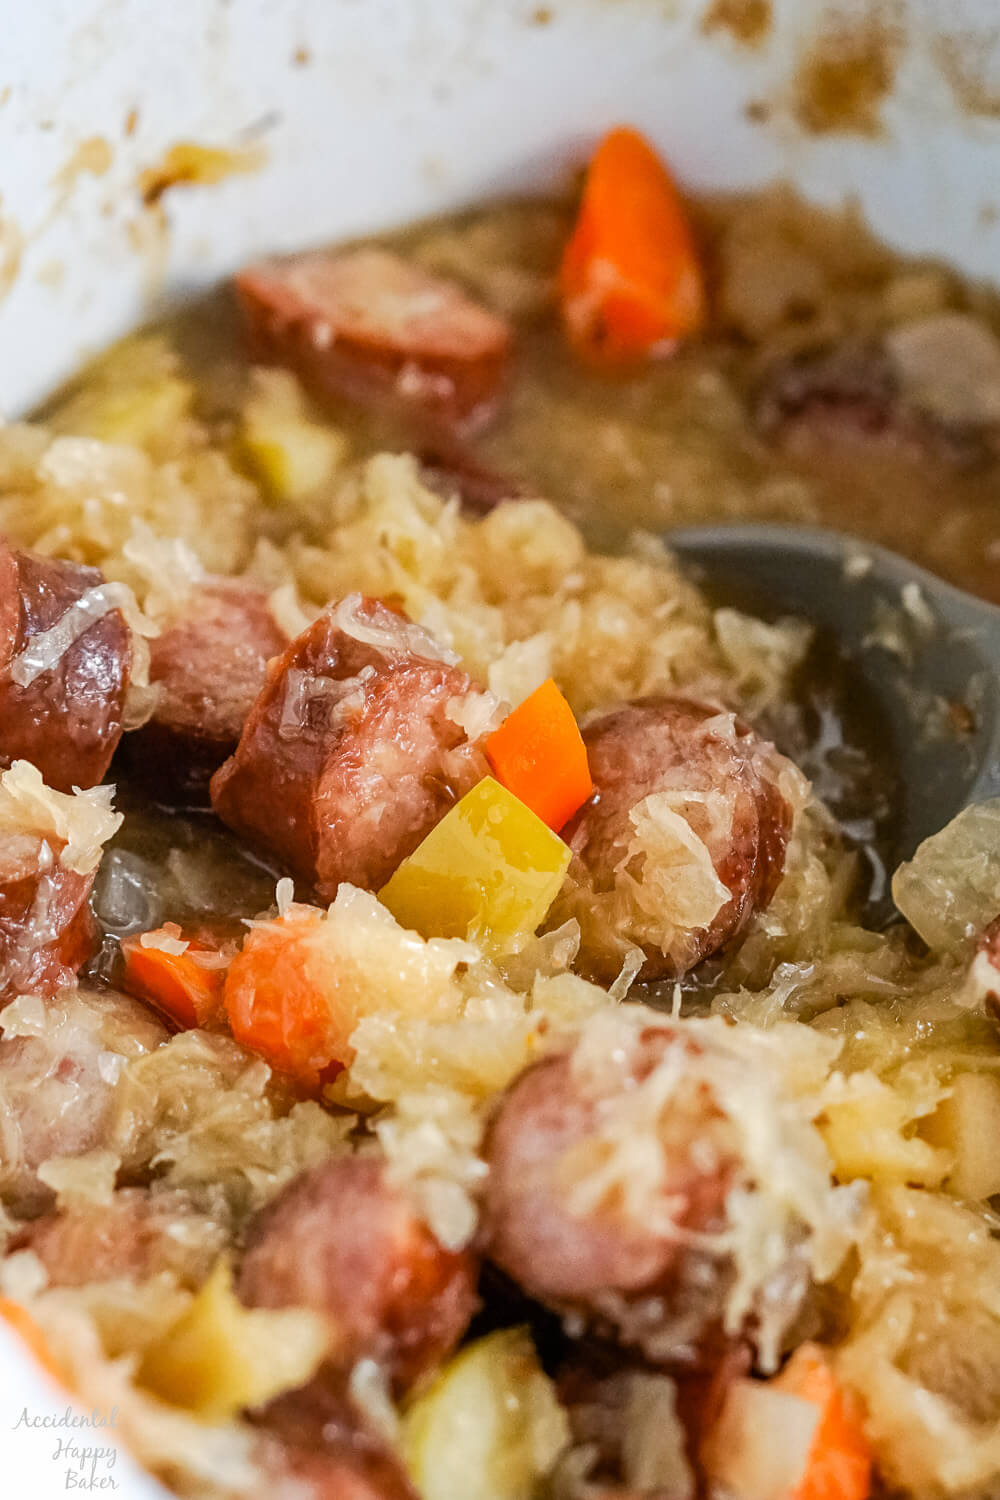 A close up image of the finished kielbasa and sauerkraut after it has finished cooking.